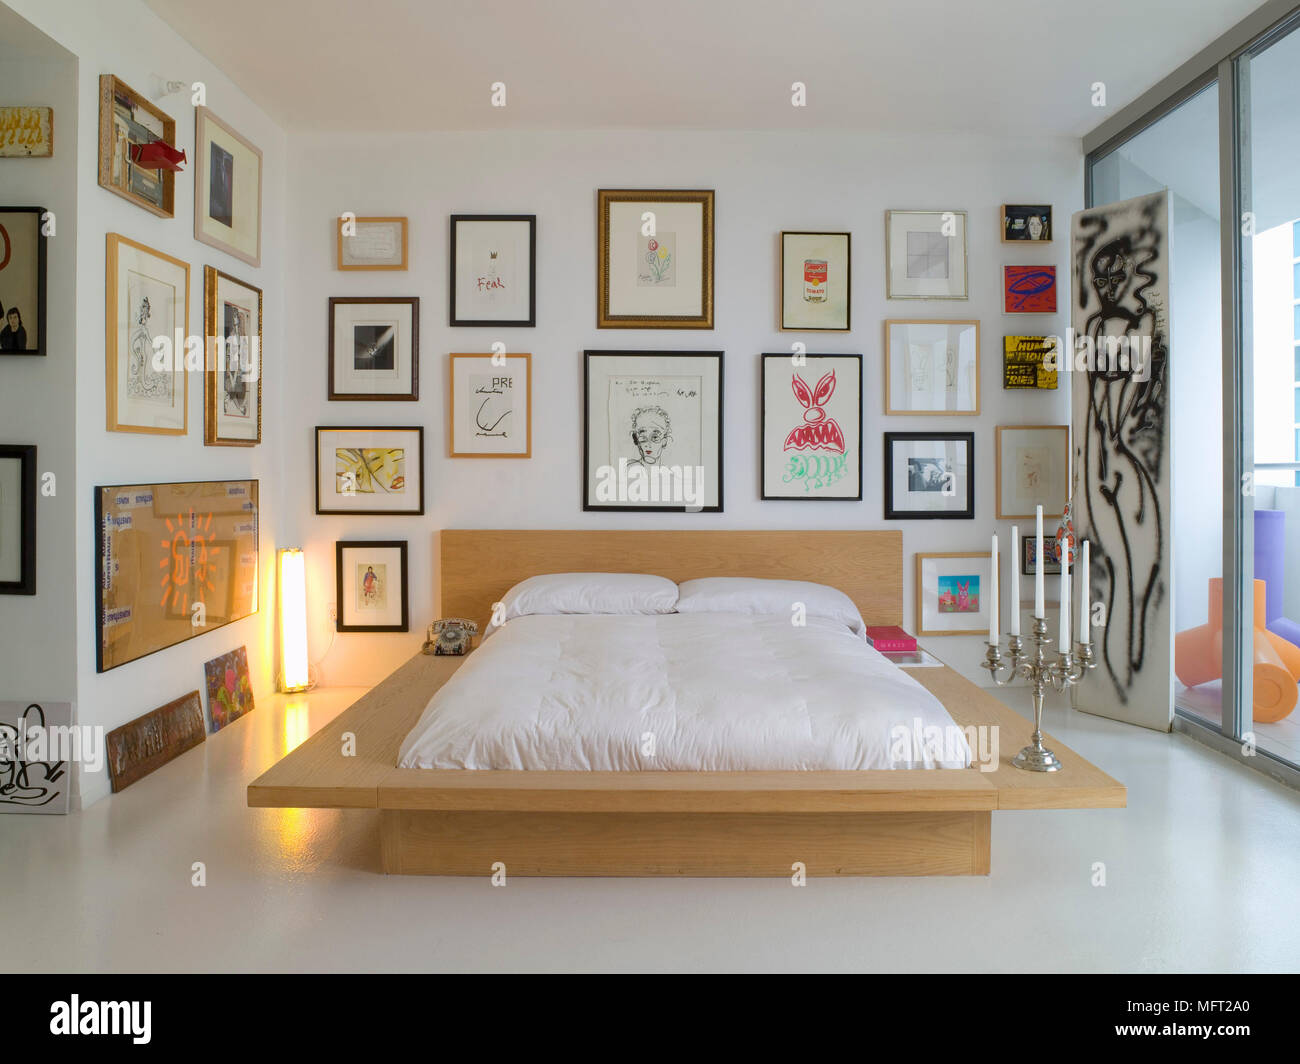 Bedroom With Low Bed With Wooden Base Surrounded By Framed Artwork Next To Large Window Stock Photo Alamy